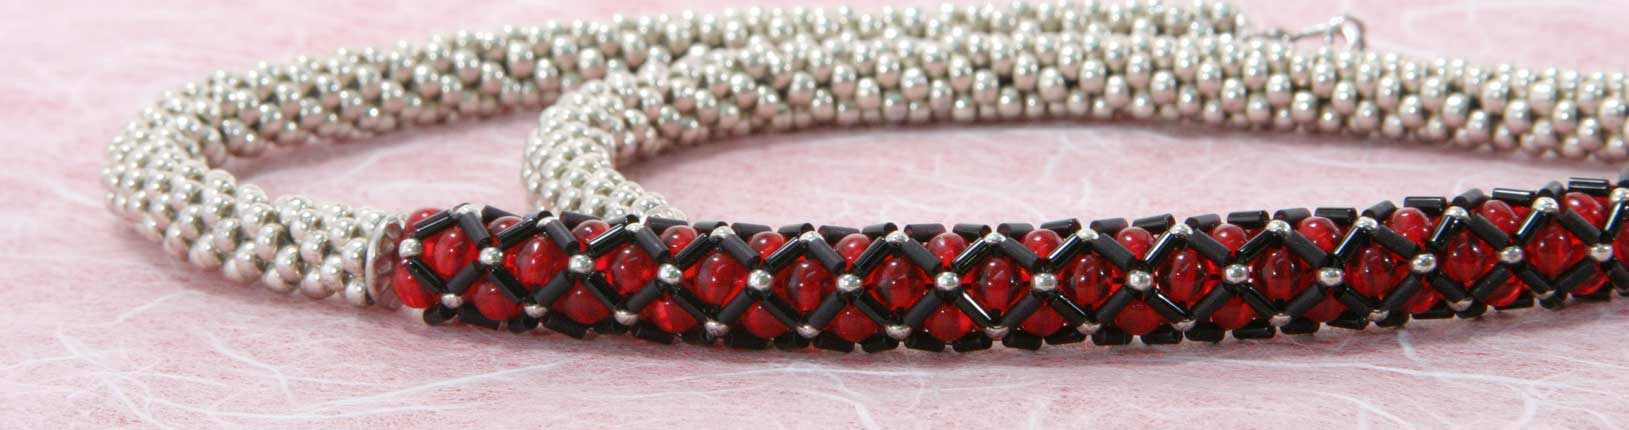 chain to beaded bracelet tag maille designs dressed tutorial archives jewelry excite jewellery